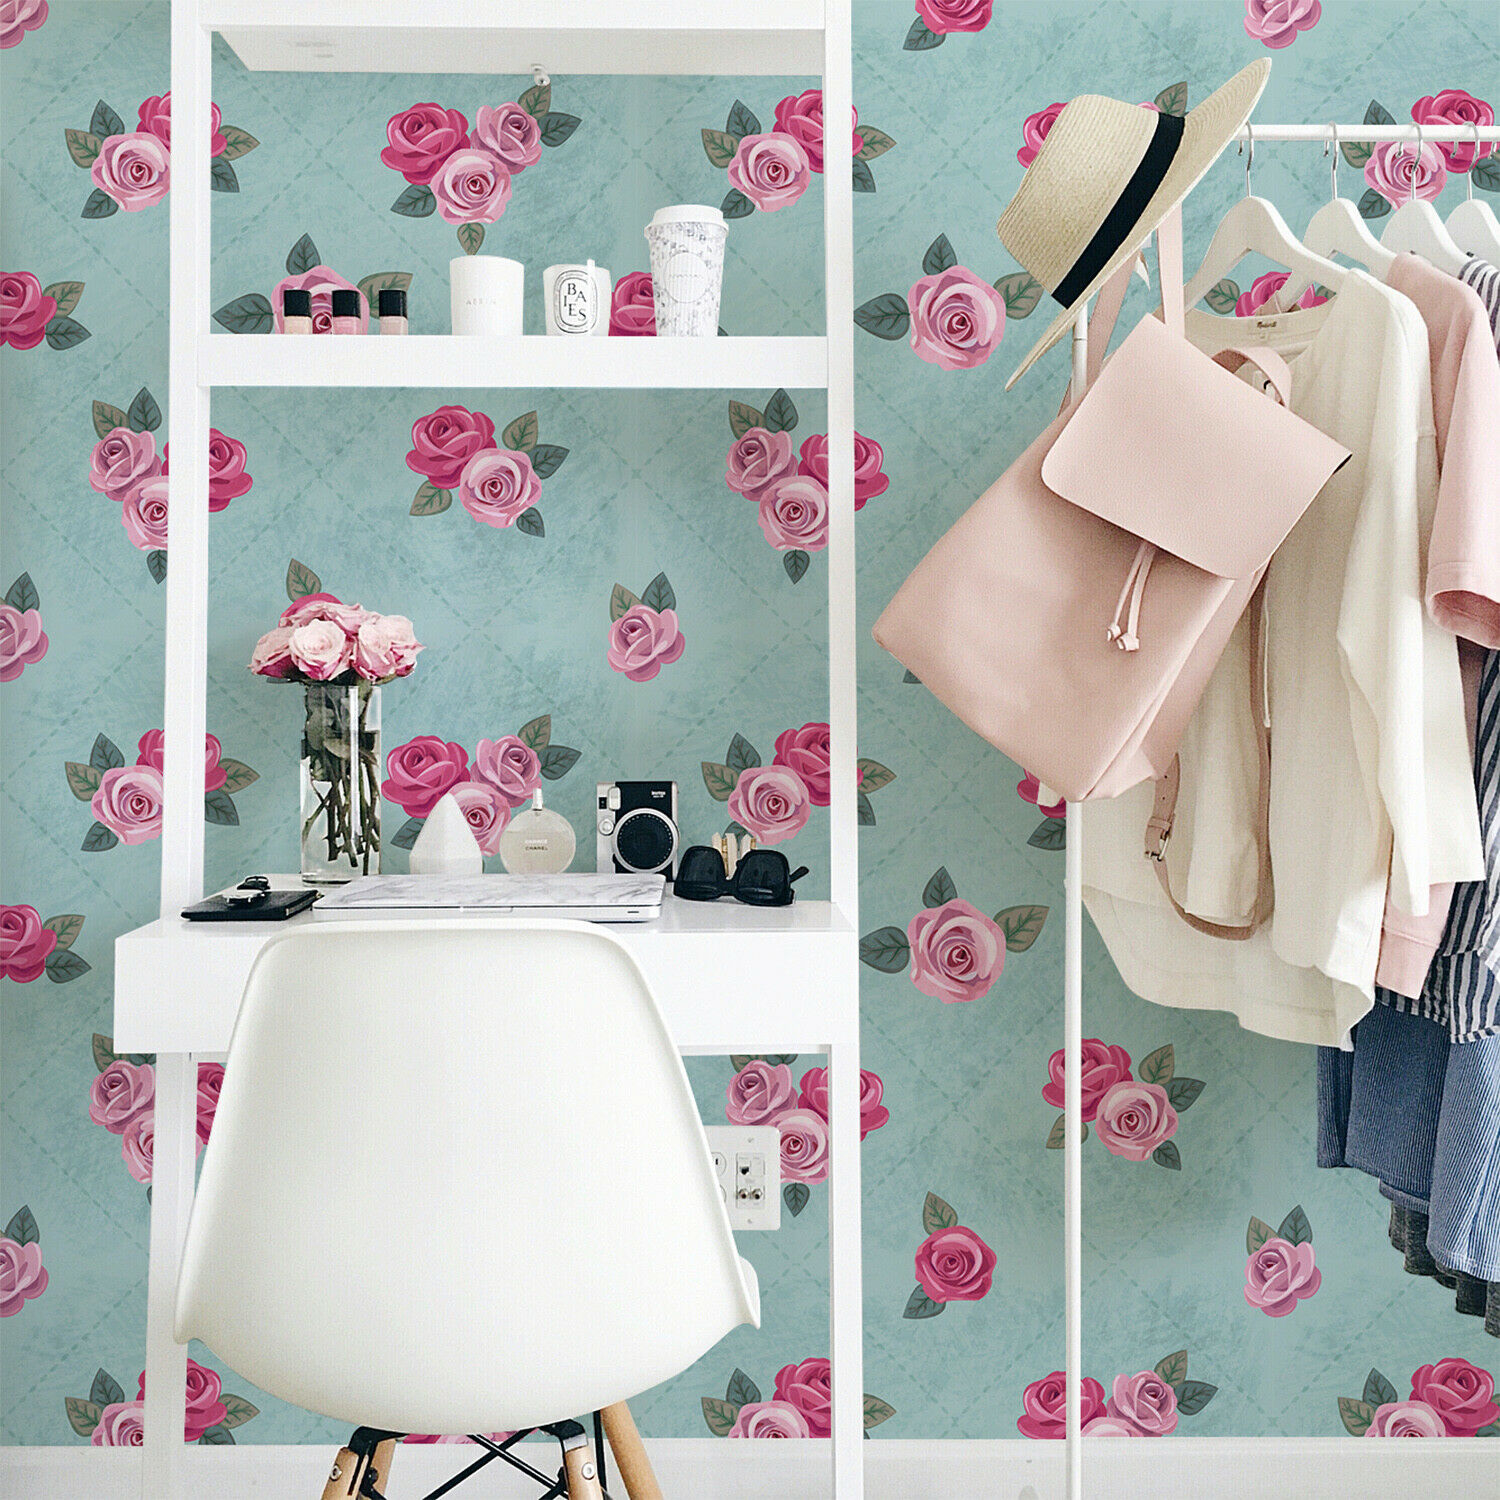 Tender Pinks Removable Wallpaper Flowers Wall Mural Floral